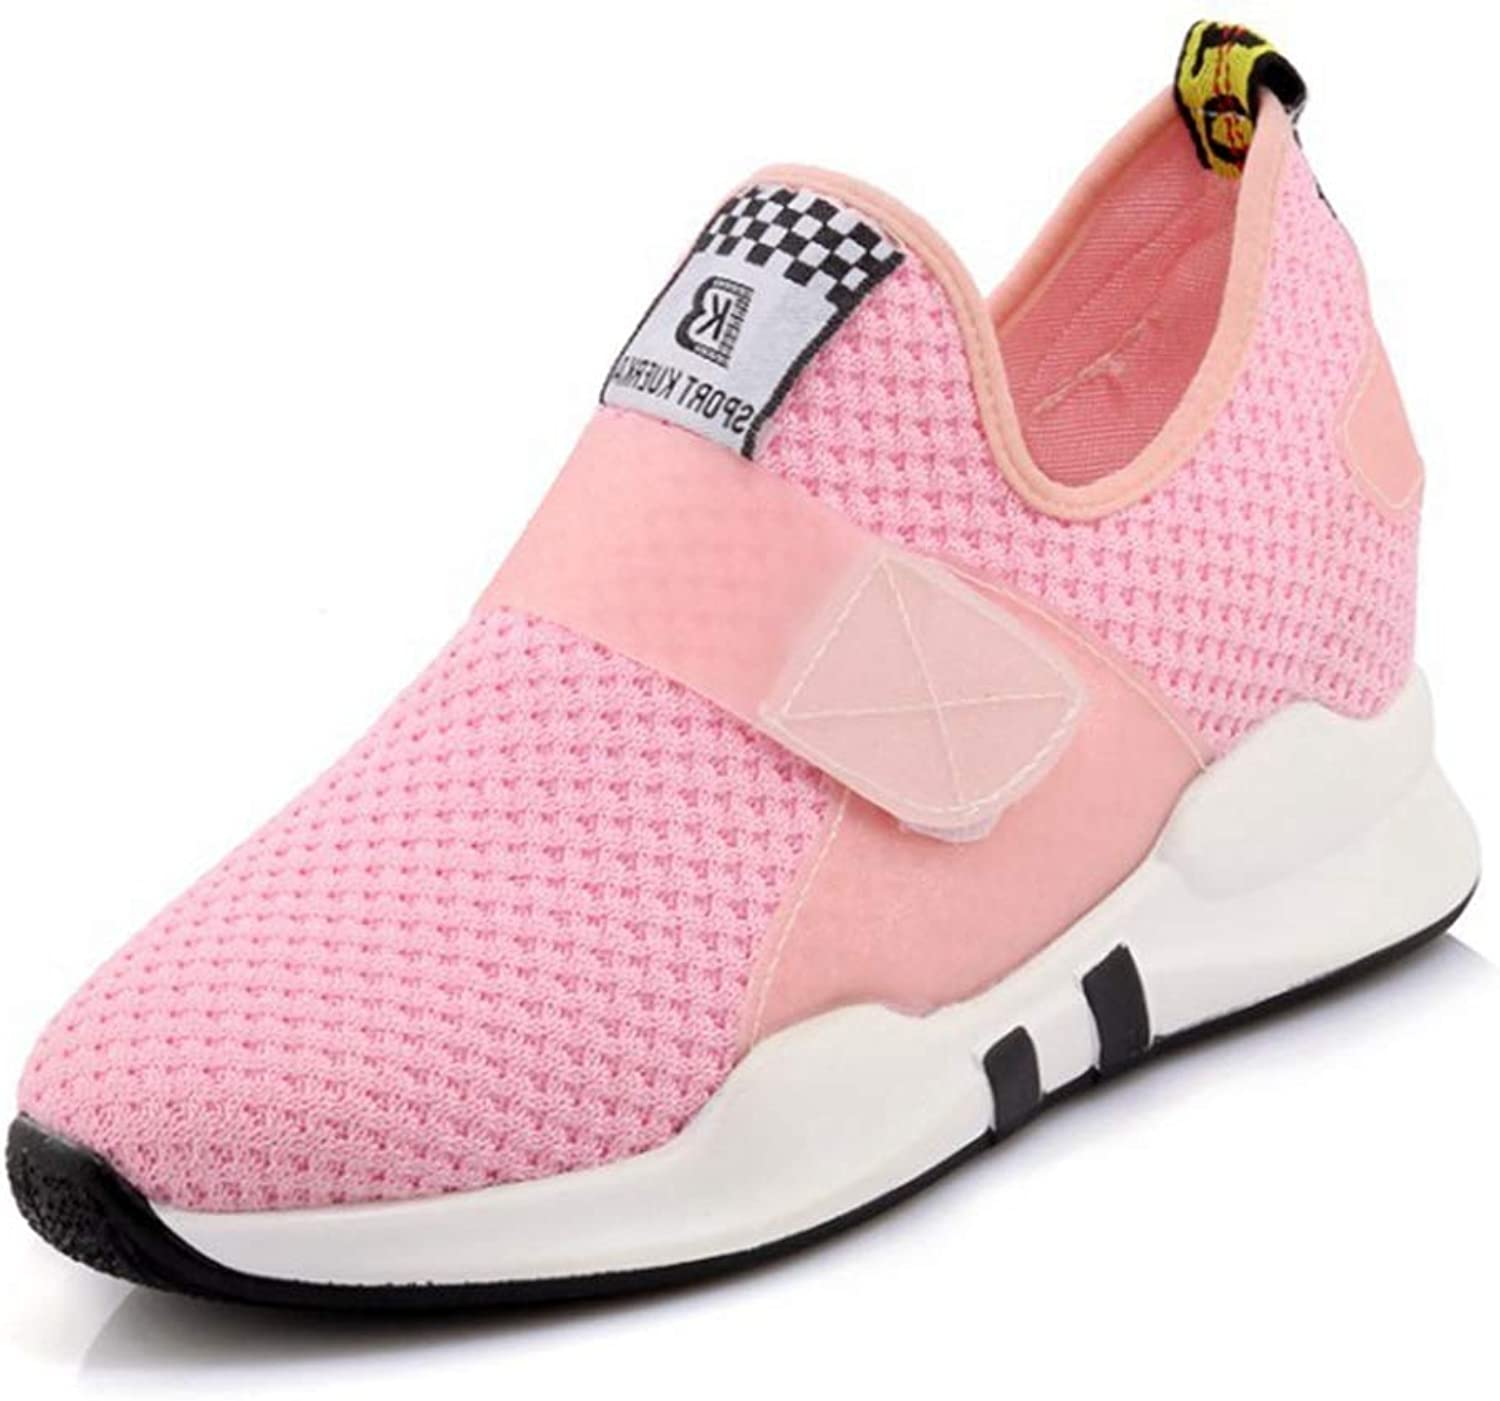 CYBLING Womens Running shoes Lightweight Slip On Walking shoes Breathable Flynit Fashion Casual Sneakers